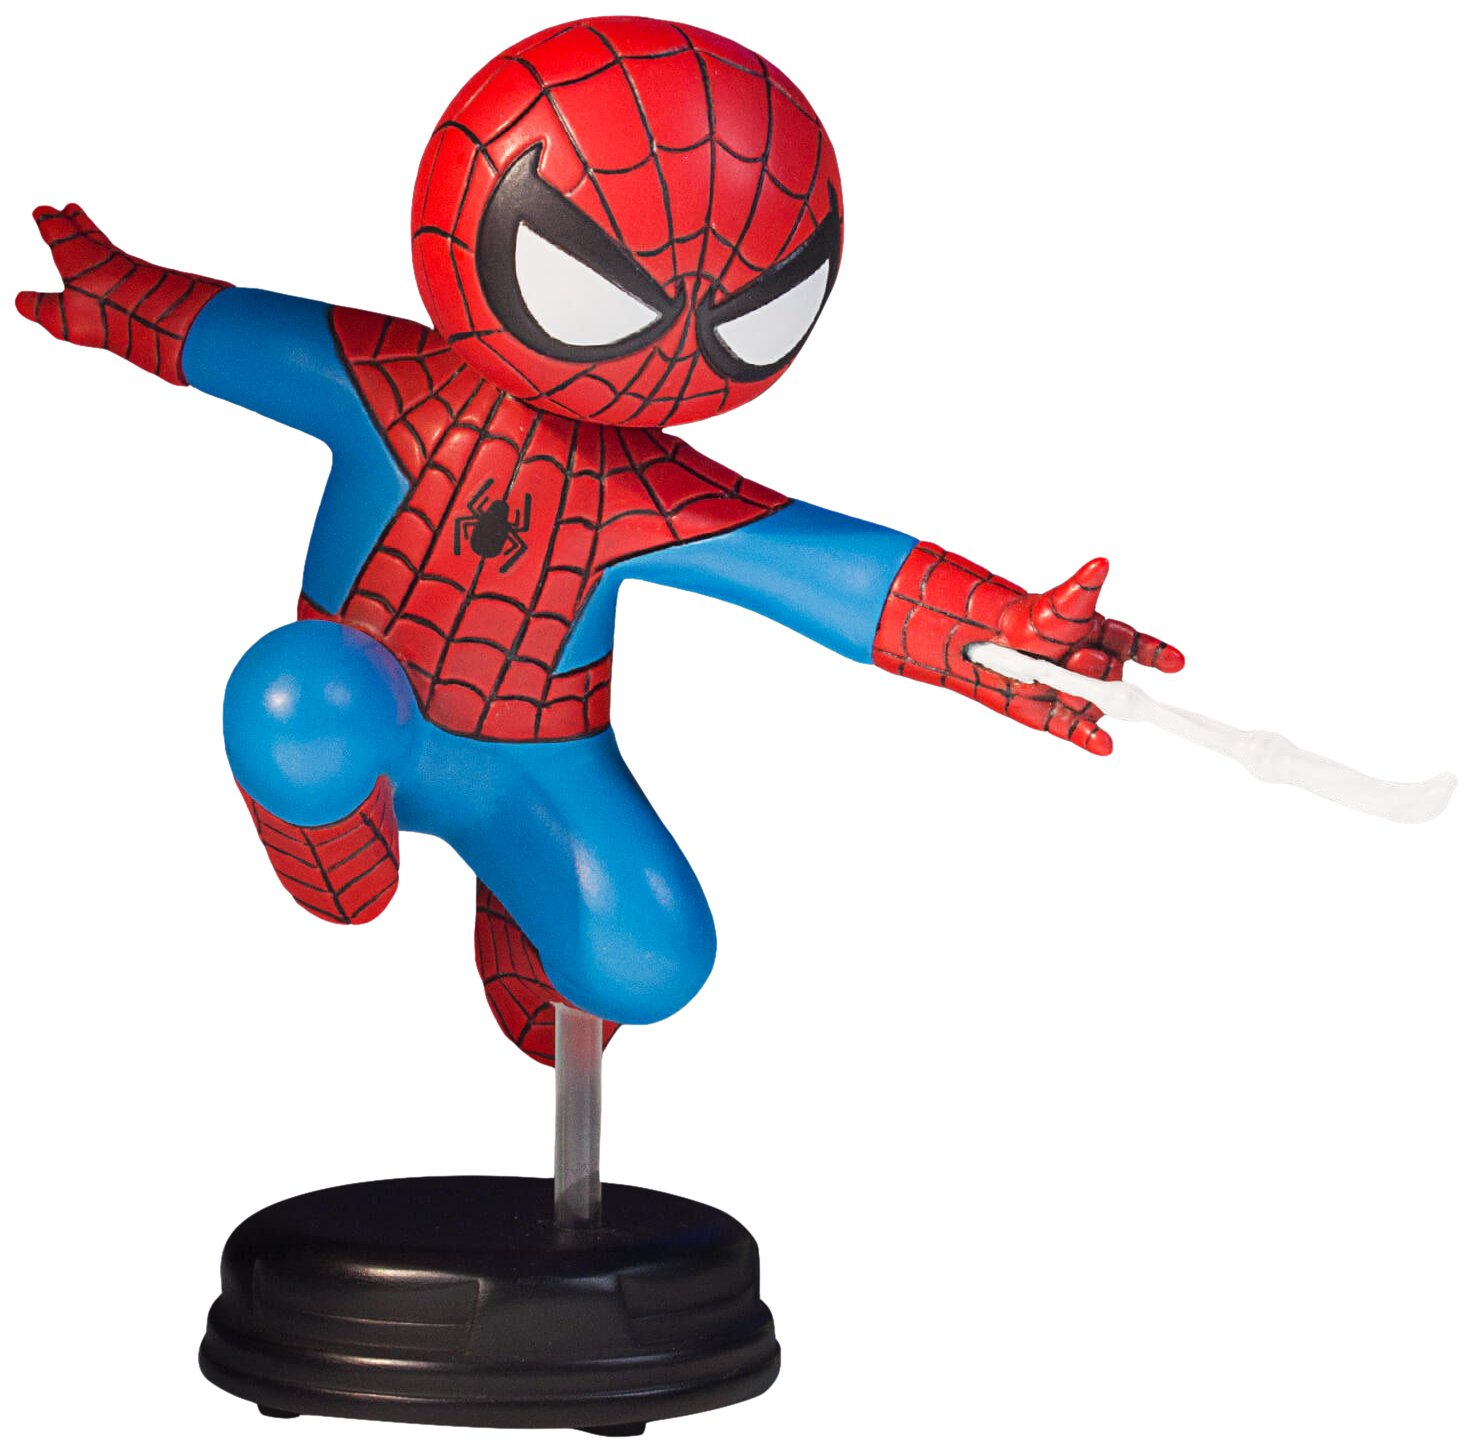 Marvel Spider-Man Animated Collectible Statue